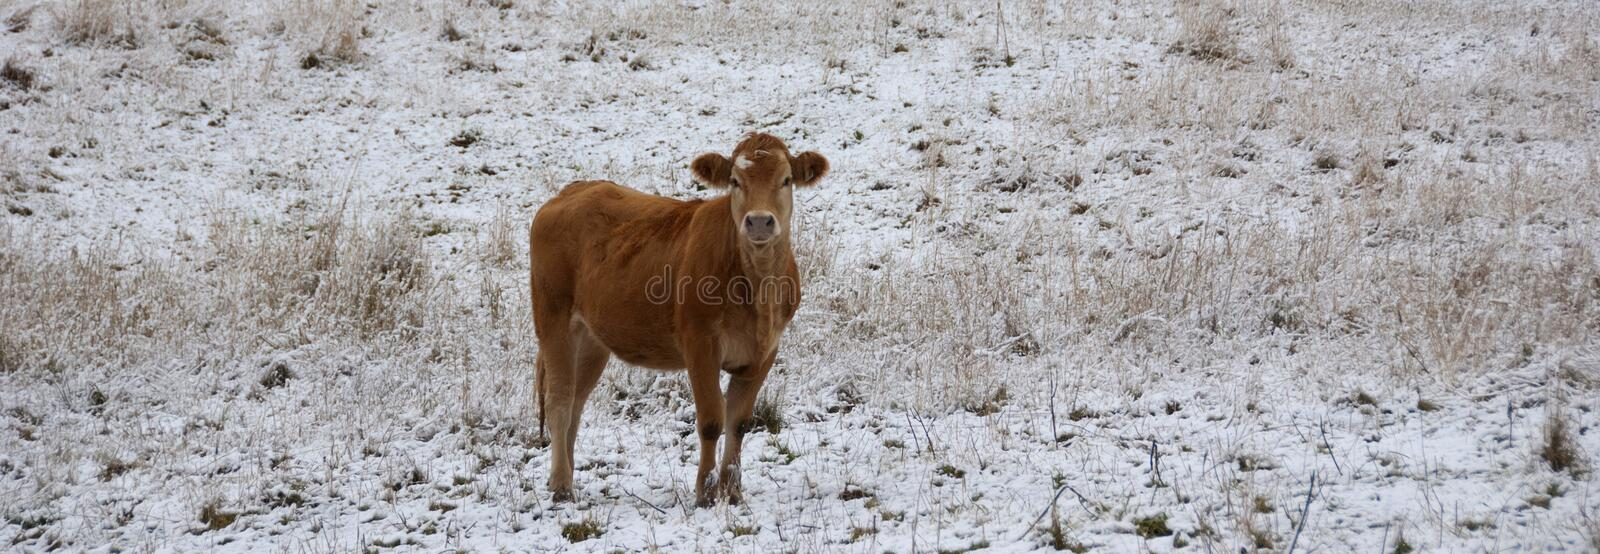 Limousin cattle  in winter Quebec Canada. Limousin cattle are a breed of highly muscled beef cattle originating from the Limousin and Marche regions of France stock photography